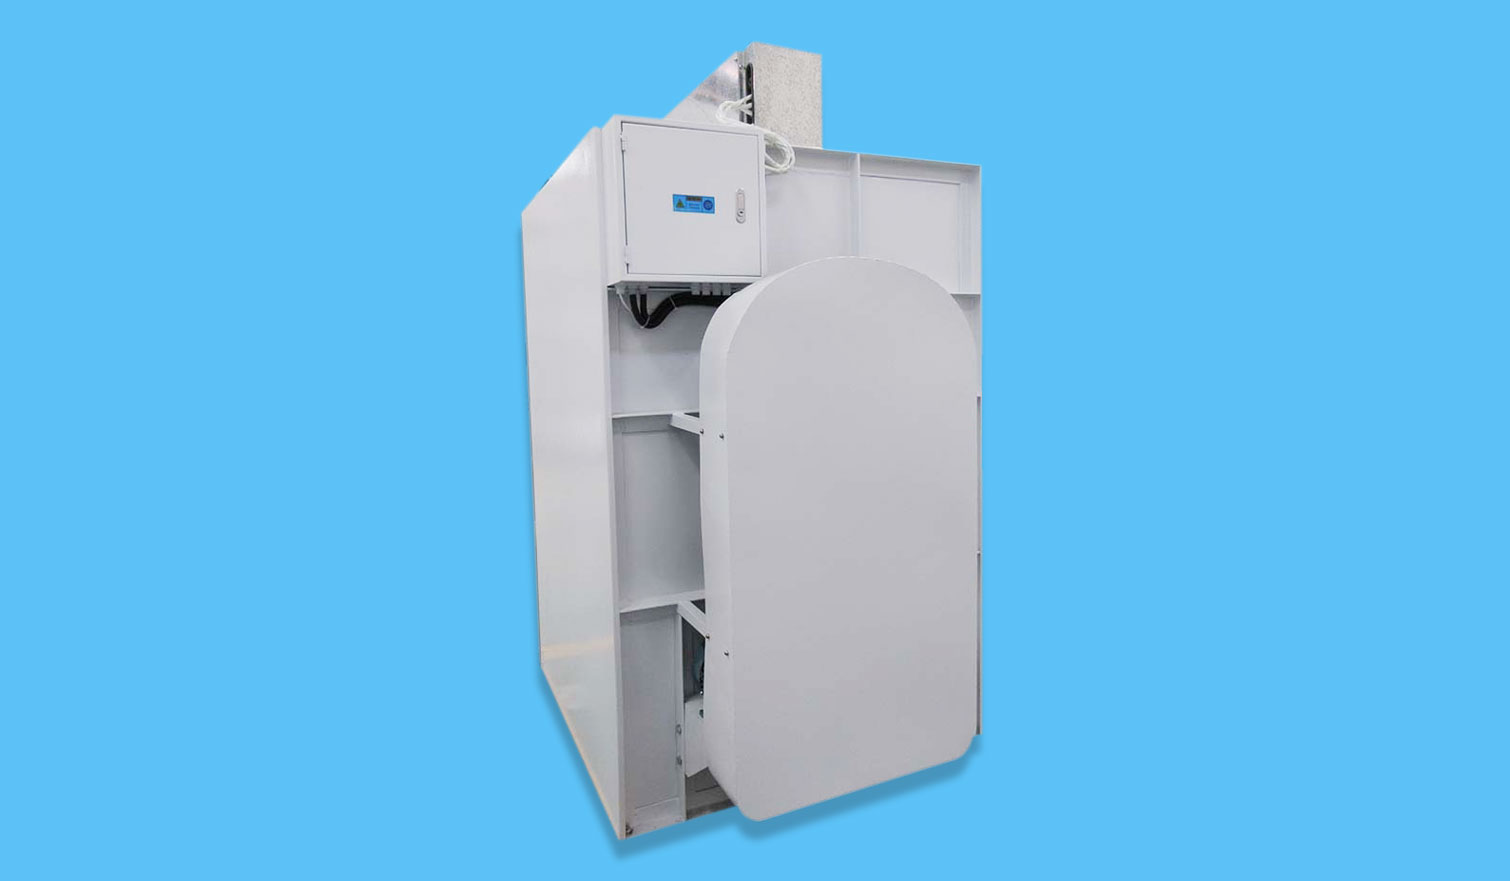 GOWORLD dryer tumble dryer machine factory price for laundry plants-9